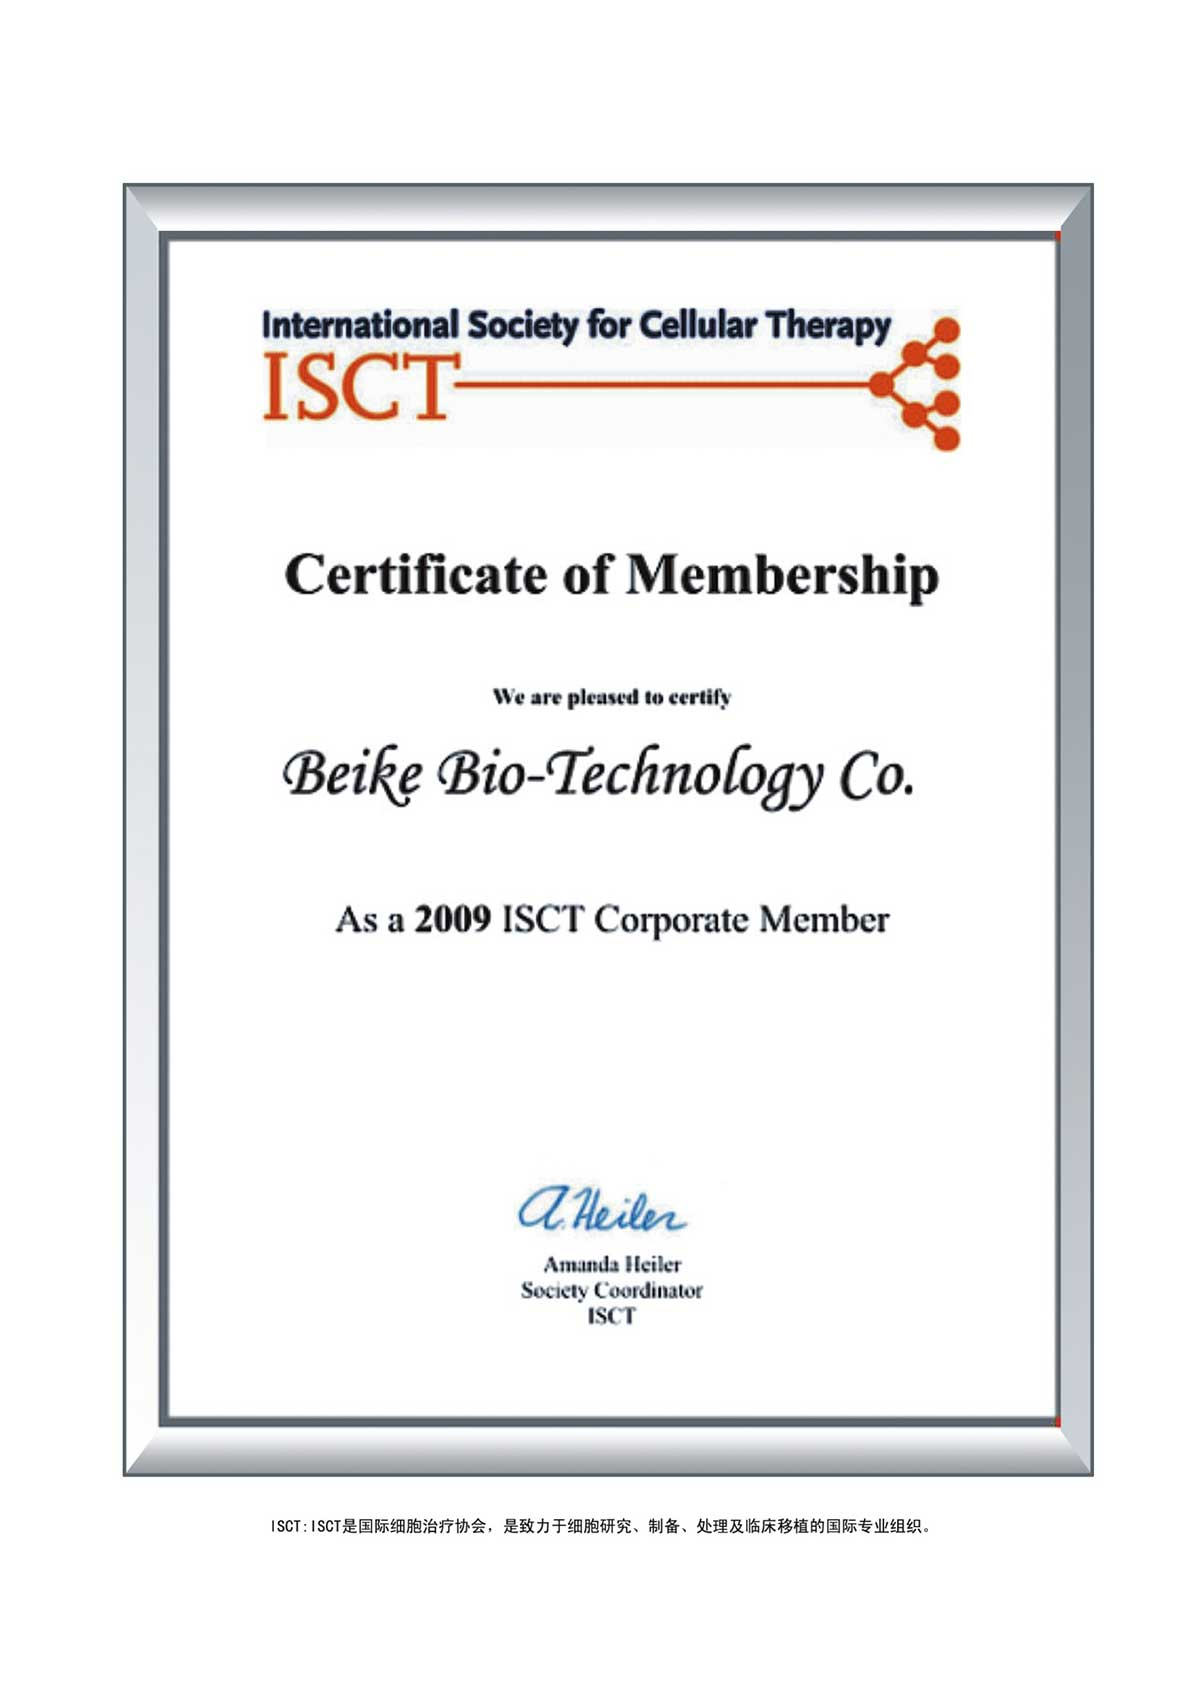 Certificate of Membership International Society for Cellular Therapy ISCT Beike Biotechnology